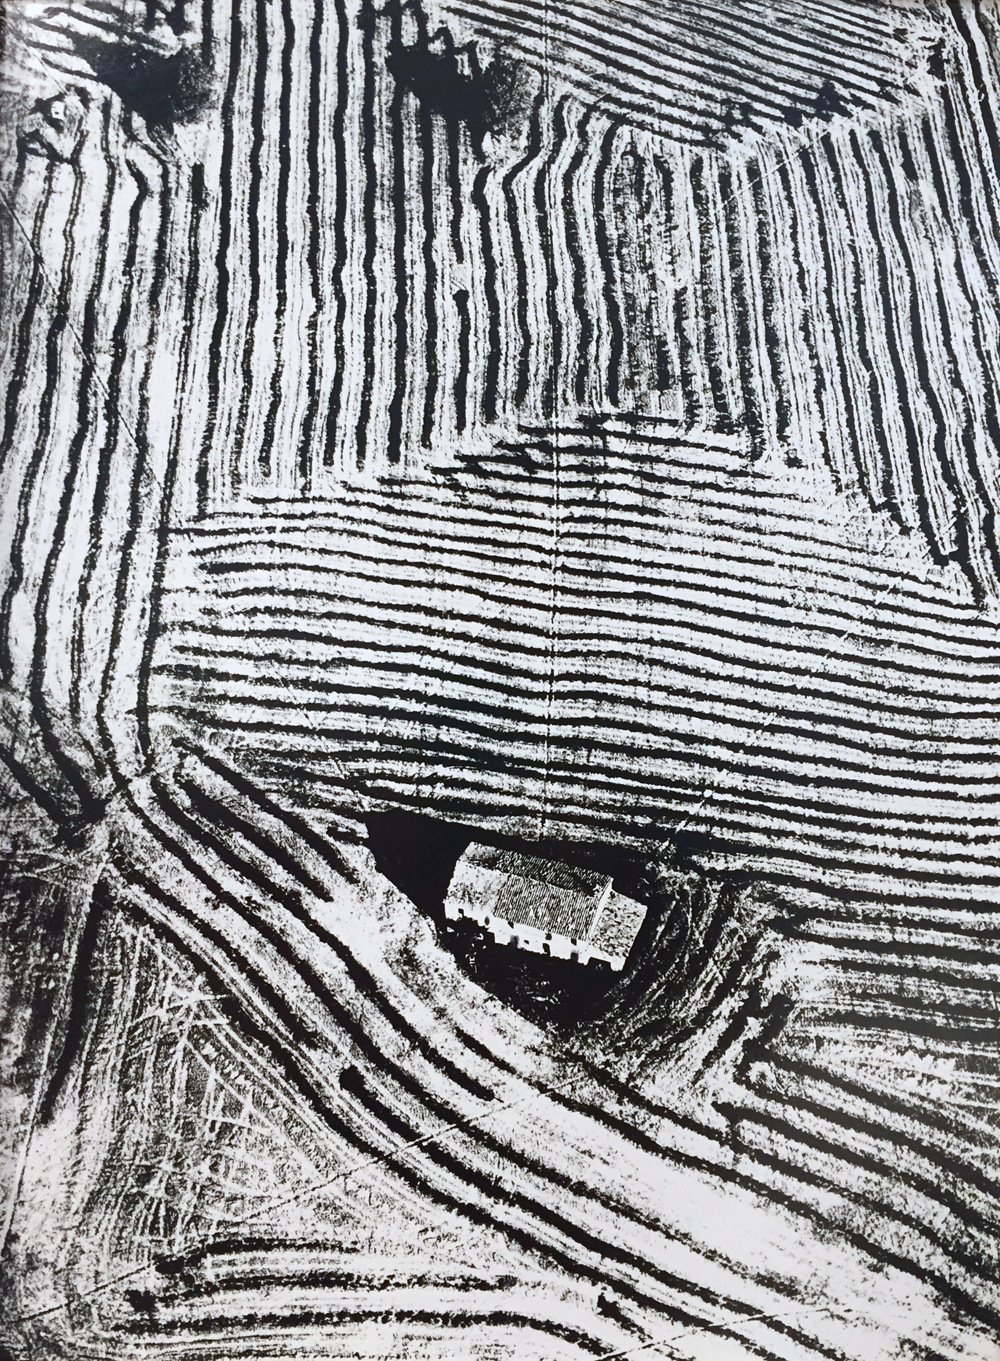 Mario Giacomelli, La Minaterra, circa 1970, gelatin silver print, 15.75 x 11.75 inches, stamped, titled and signed, verso, $5000.